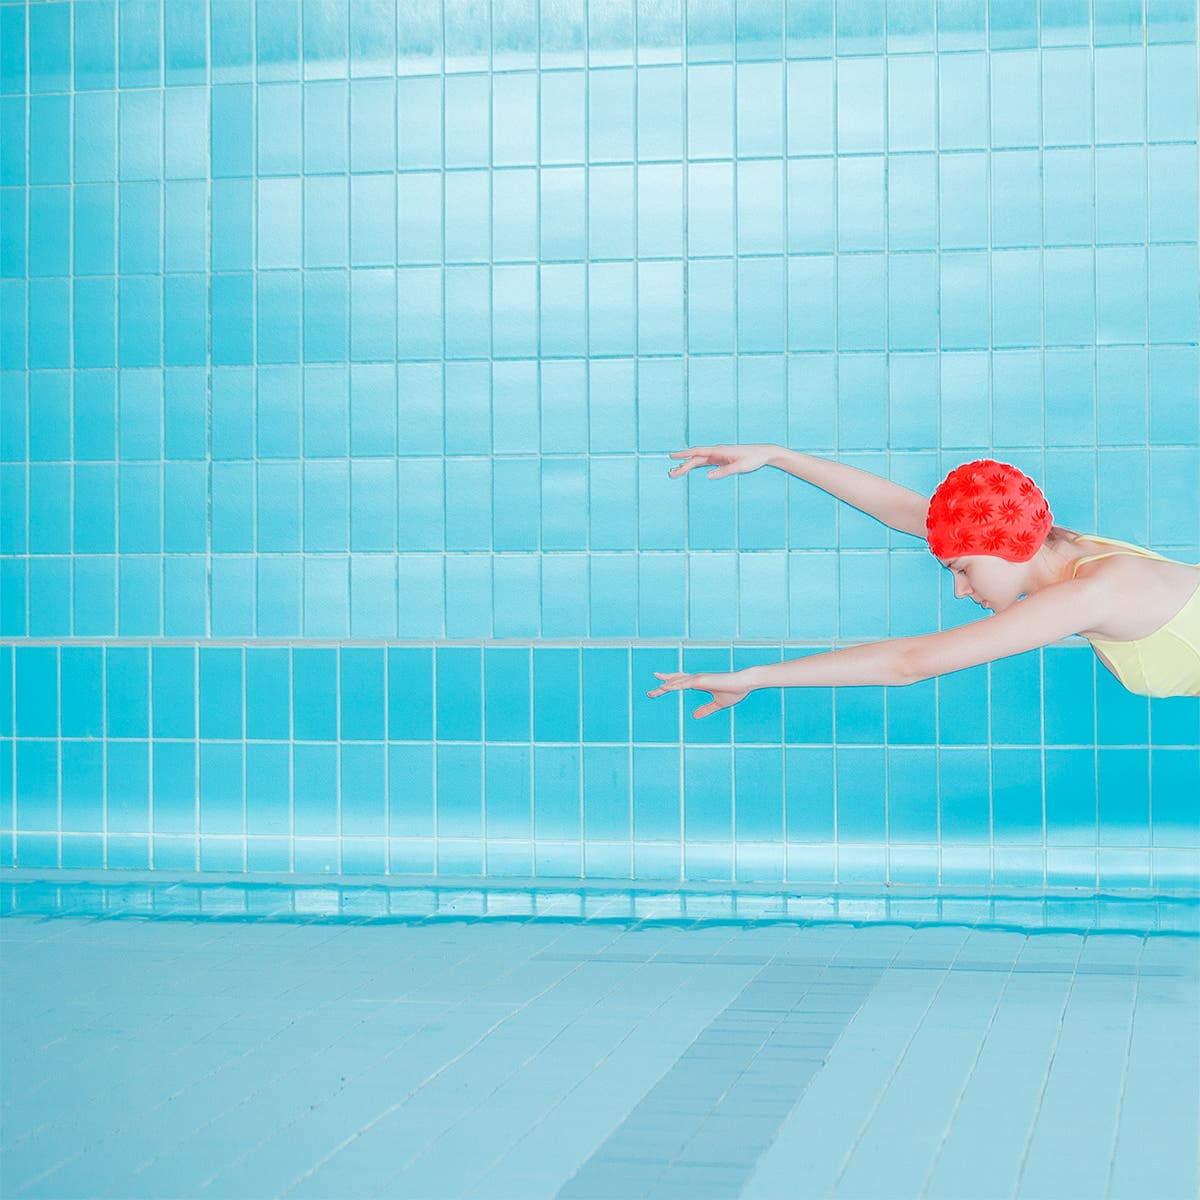 Maria Svarbova Created Visually Stunning Conceptual Portraits By Removing Water From A Swimming Pool